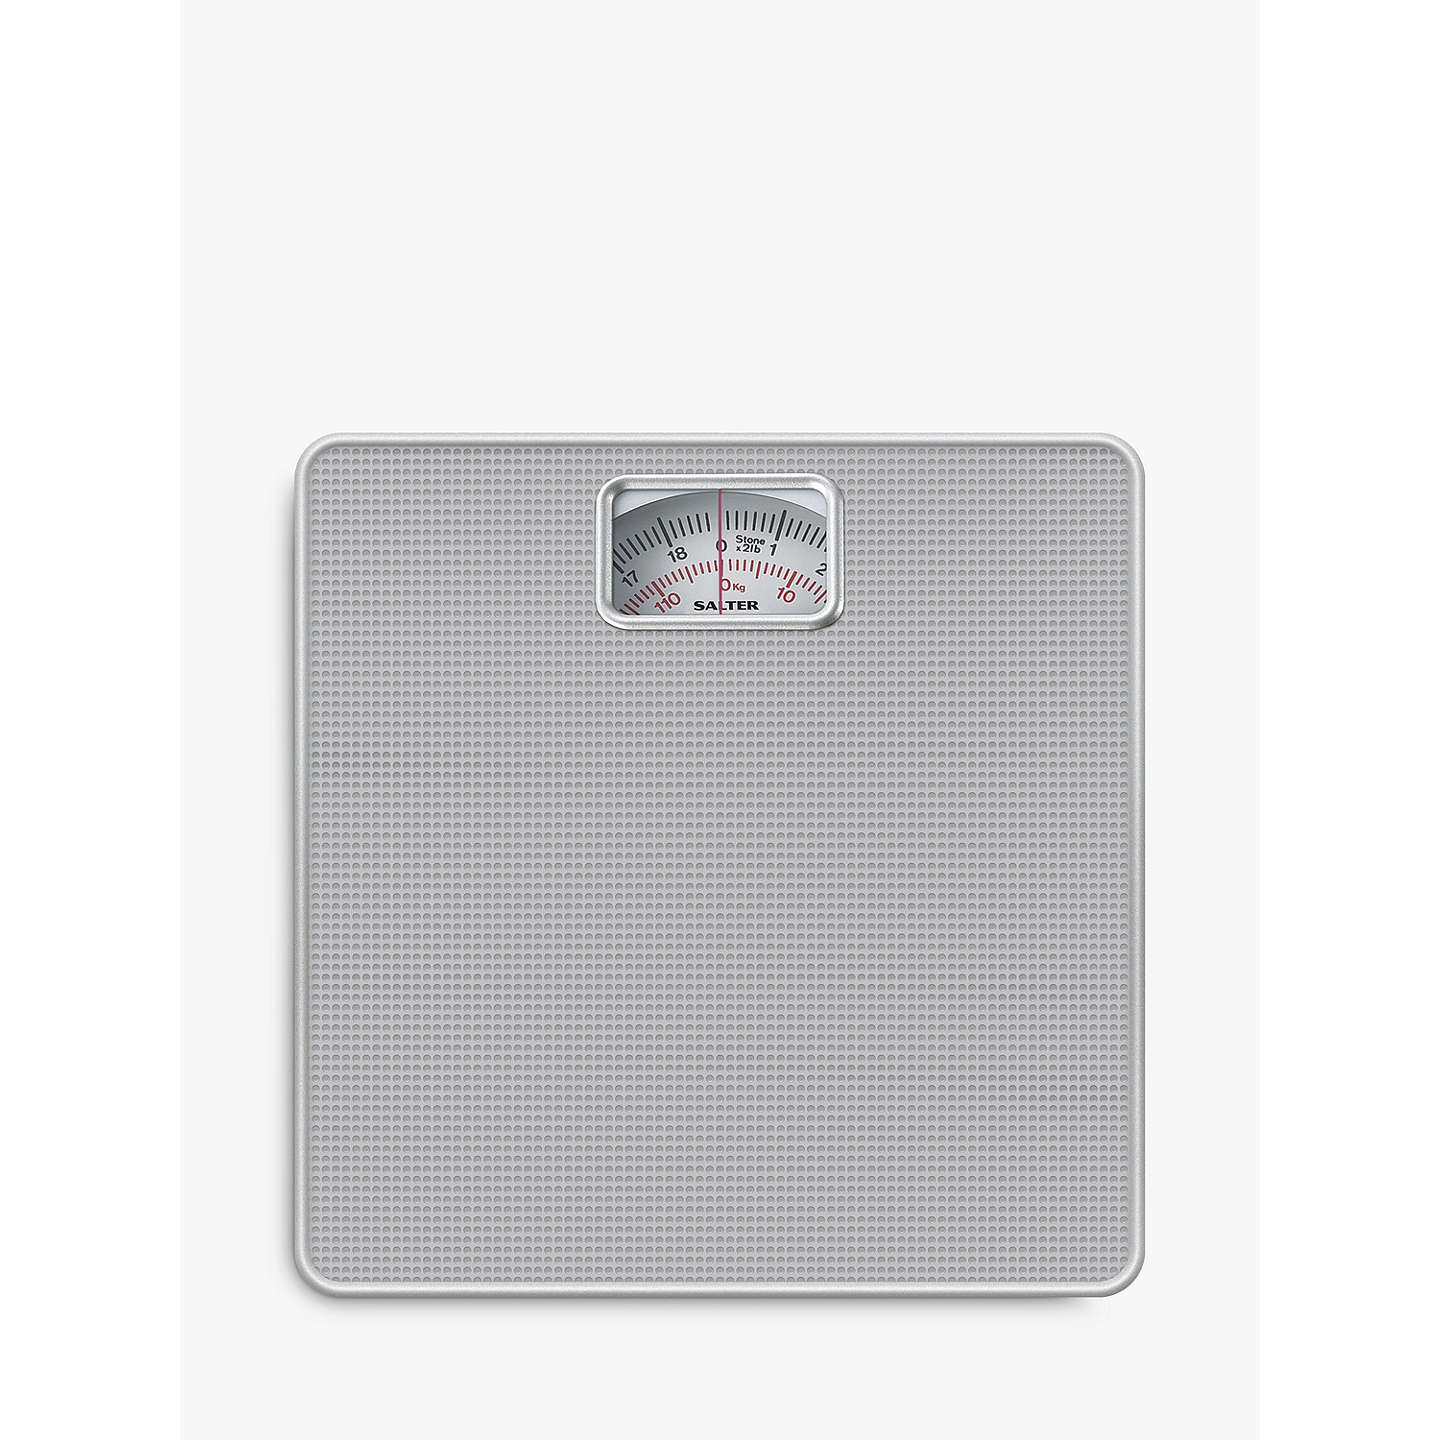 BuySalter 433 Mechanical Bathroom Scale Online At Johnlewis.com ...